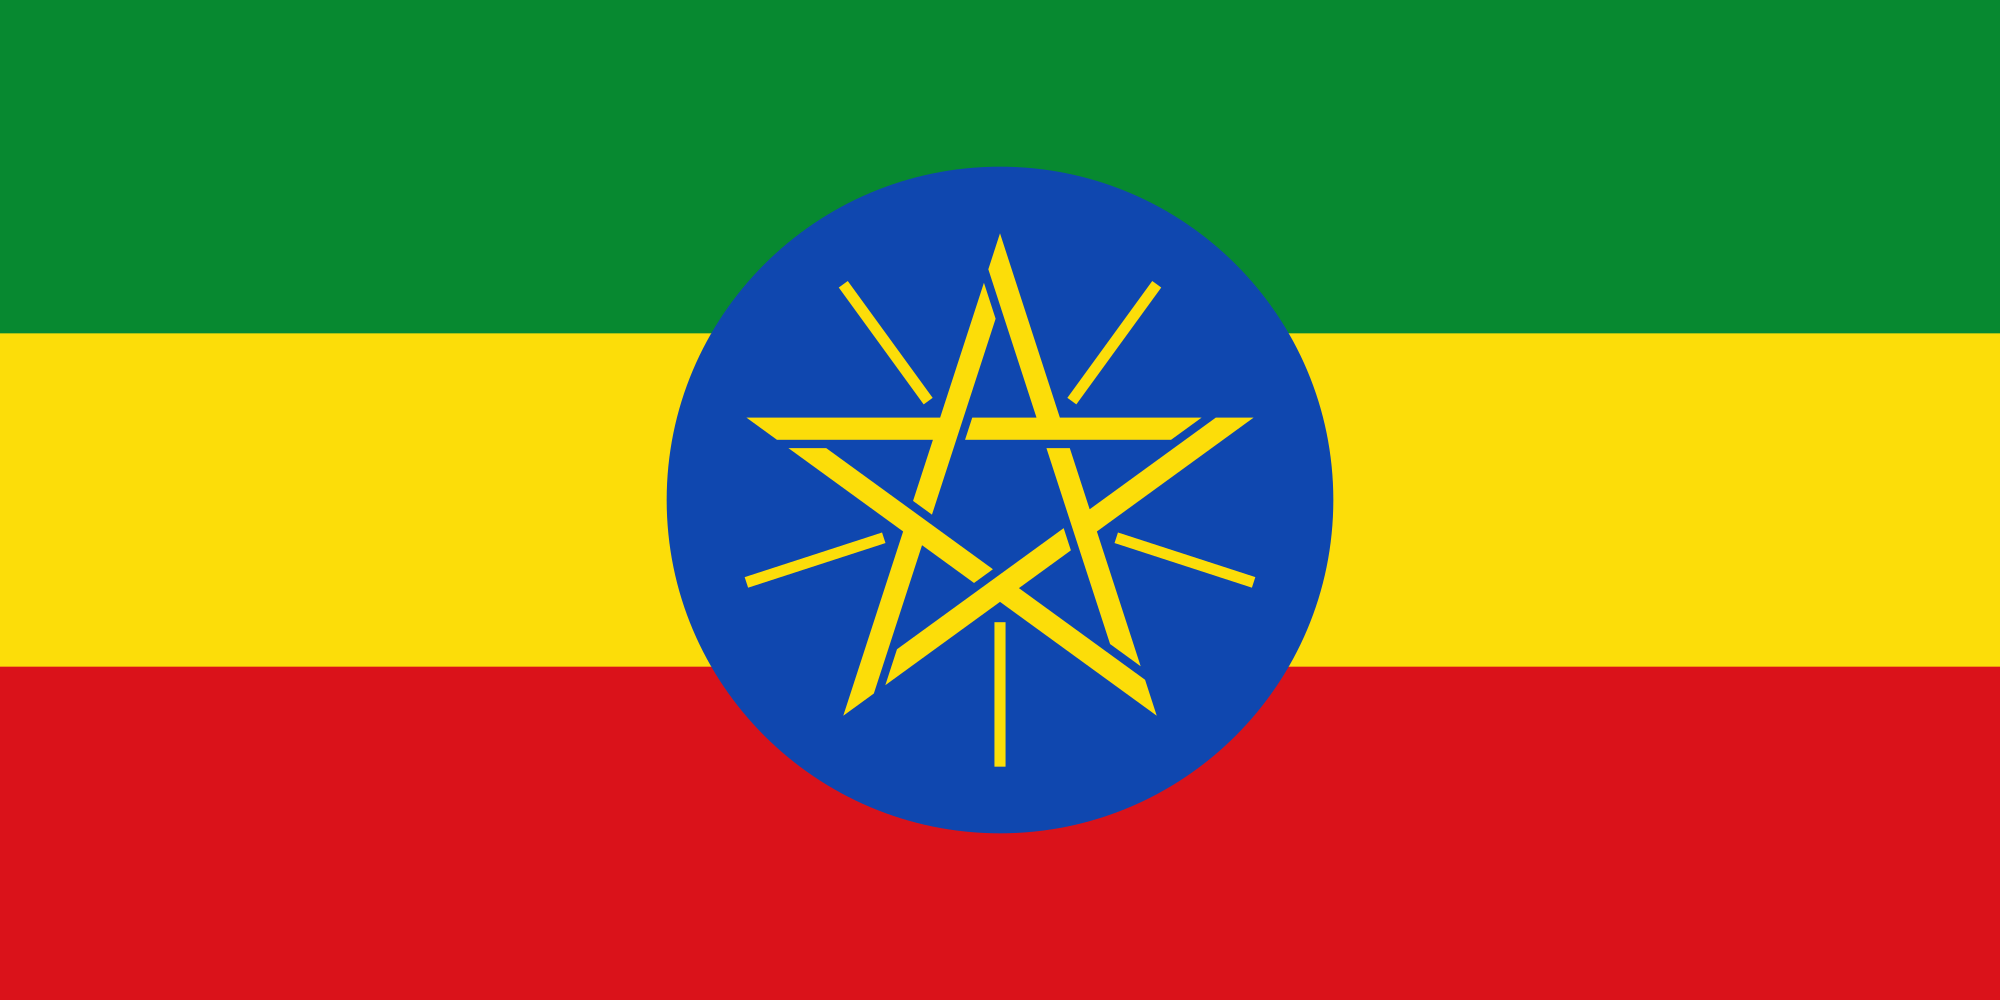 Altcoin News: Ethiopia to Launch Cardano Based Tokens